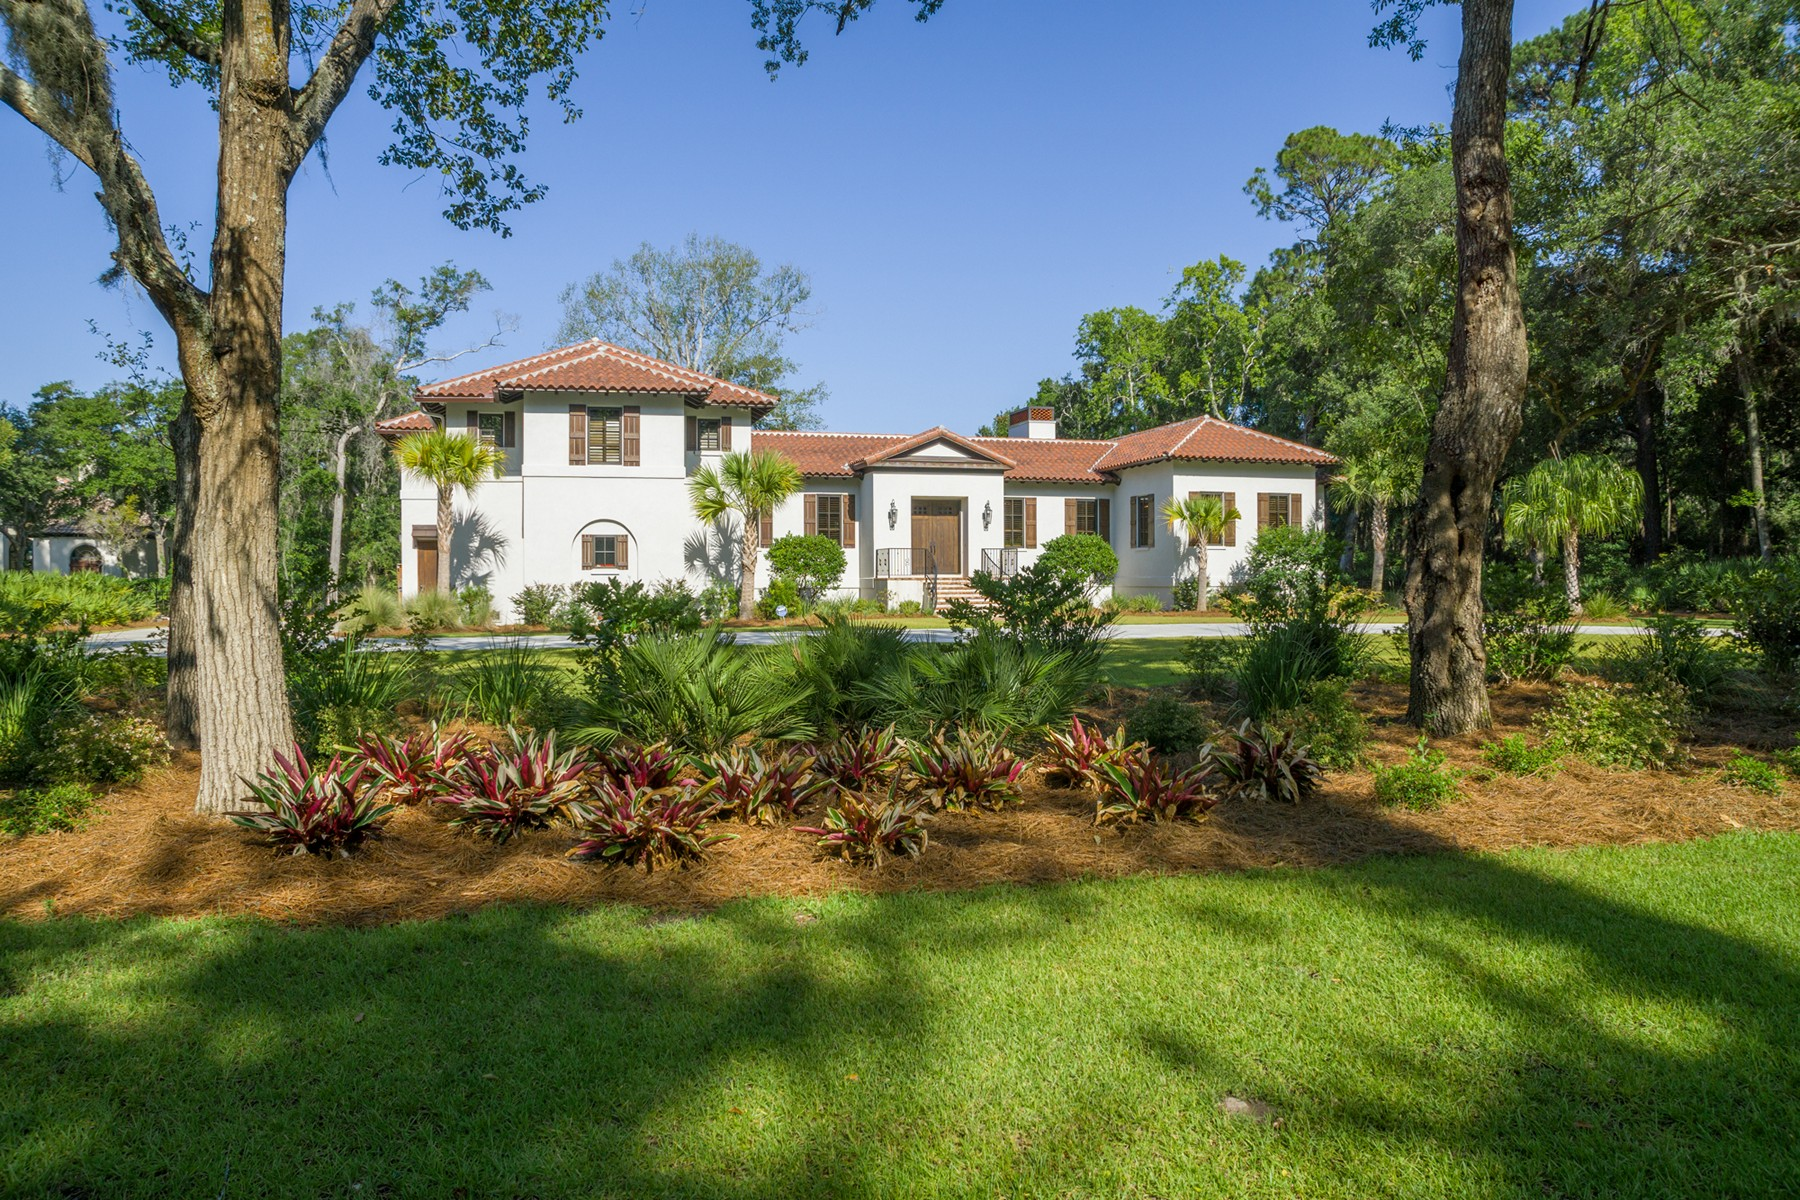 Single Family Home for Active at 136 Cuyler Lane St. Simons Island, Georgia 31522 United States